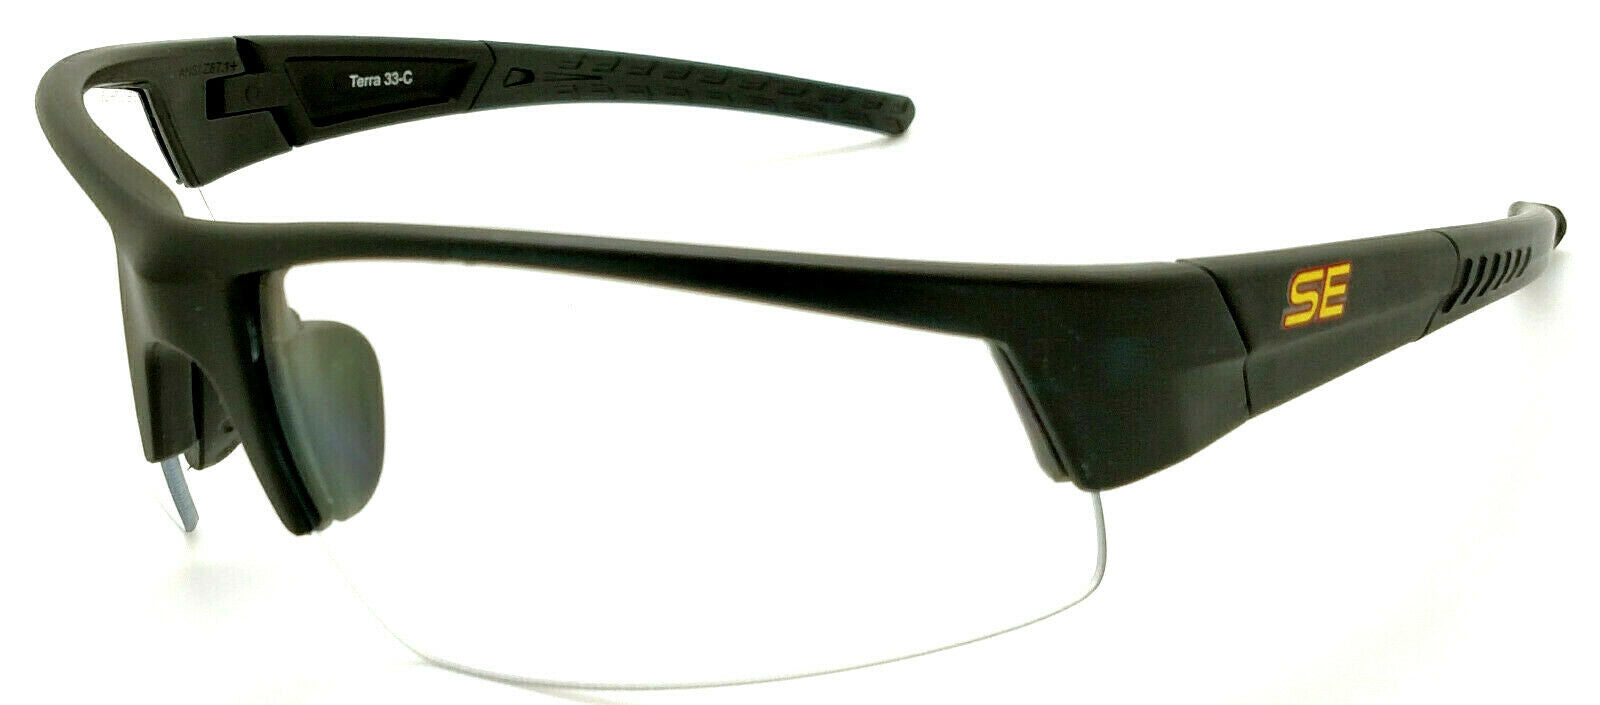 Shooter's Edge Terra II Z87.1 Safety Shooting Glasses Clear lens Matte Black